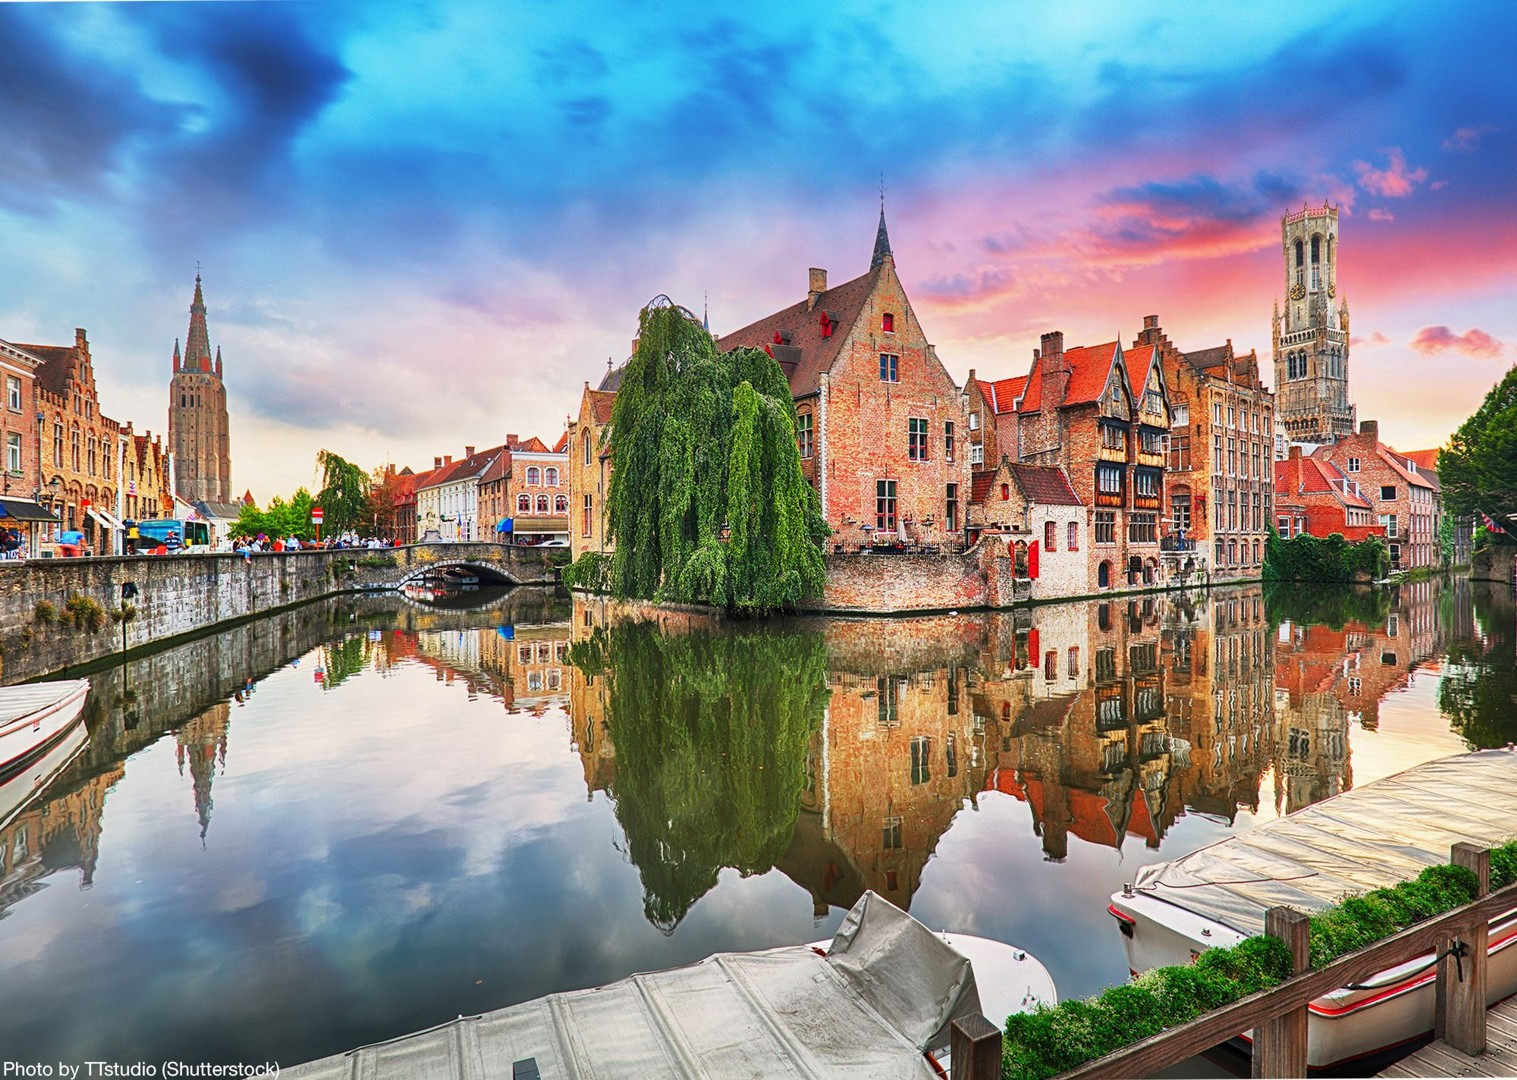 belfry-of-bruges-amsterdam-to-belgium-cycling-premium-boat-tour.jpg - Holland and Belgium - Amsterdam to Bruges - Premium Bike and Barge Holiday - Leisure Cycling